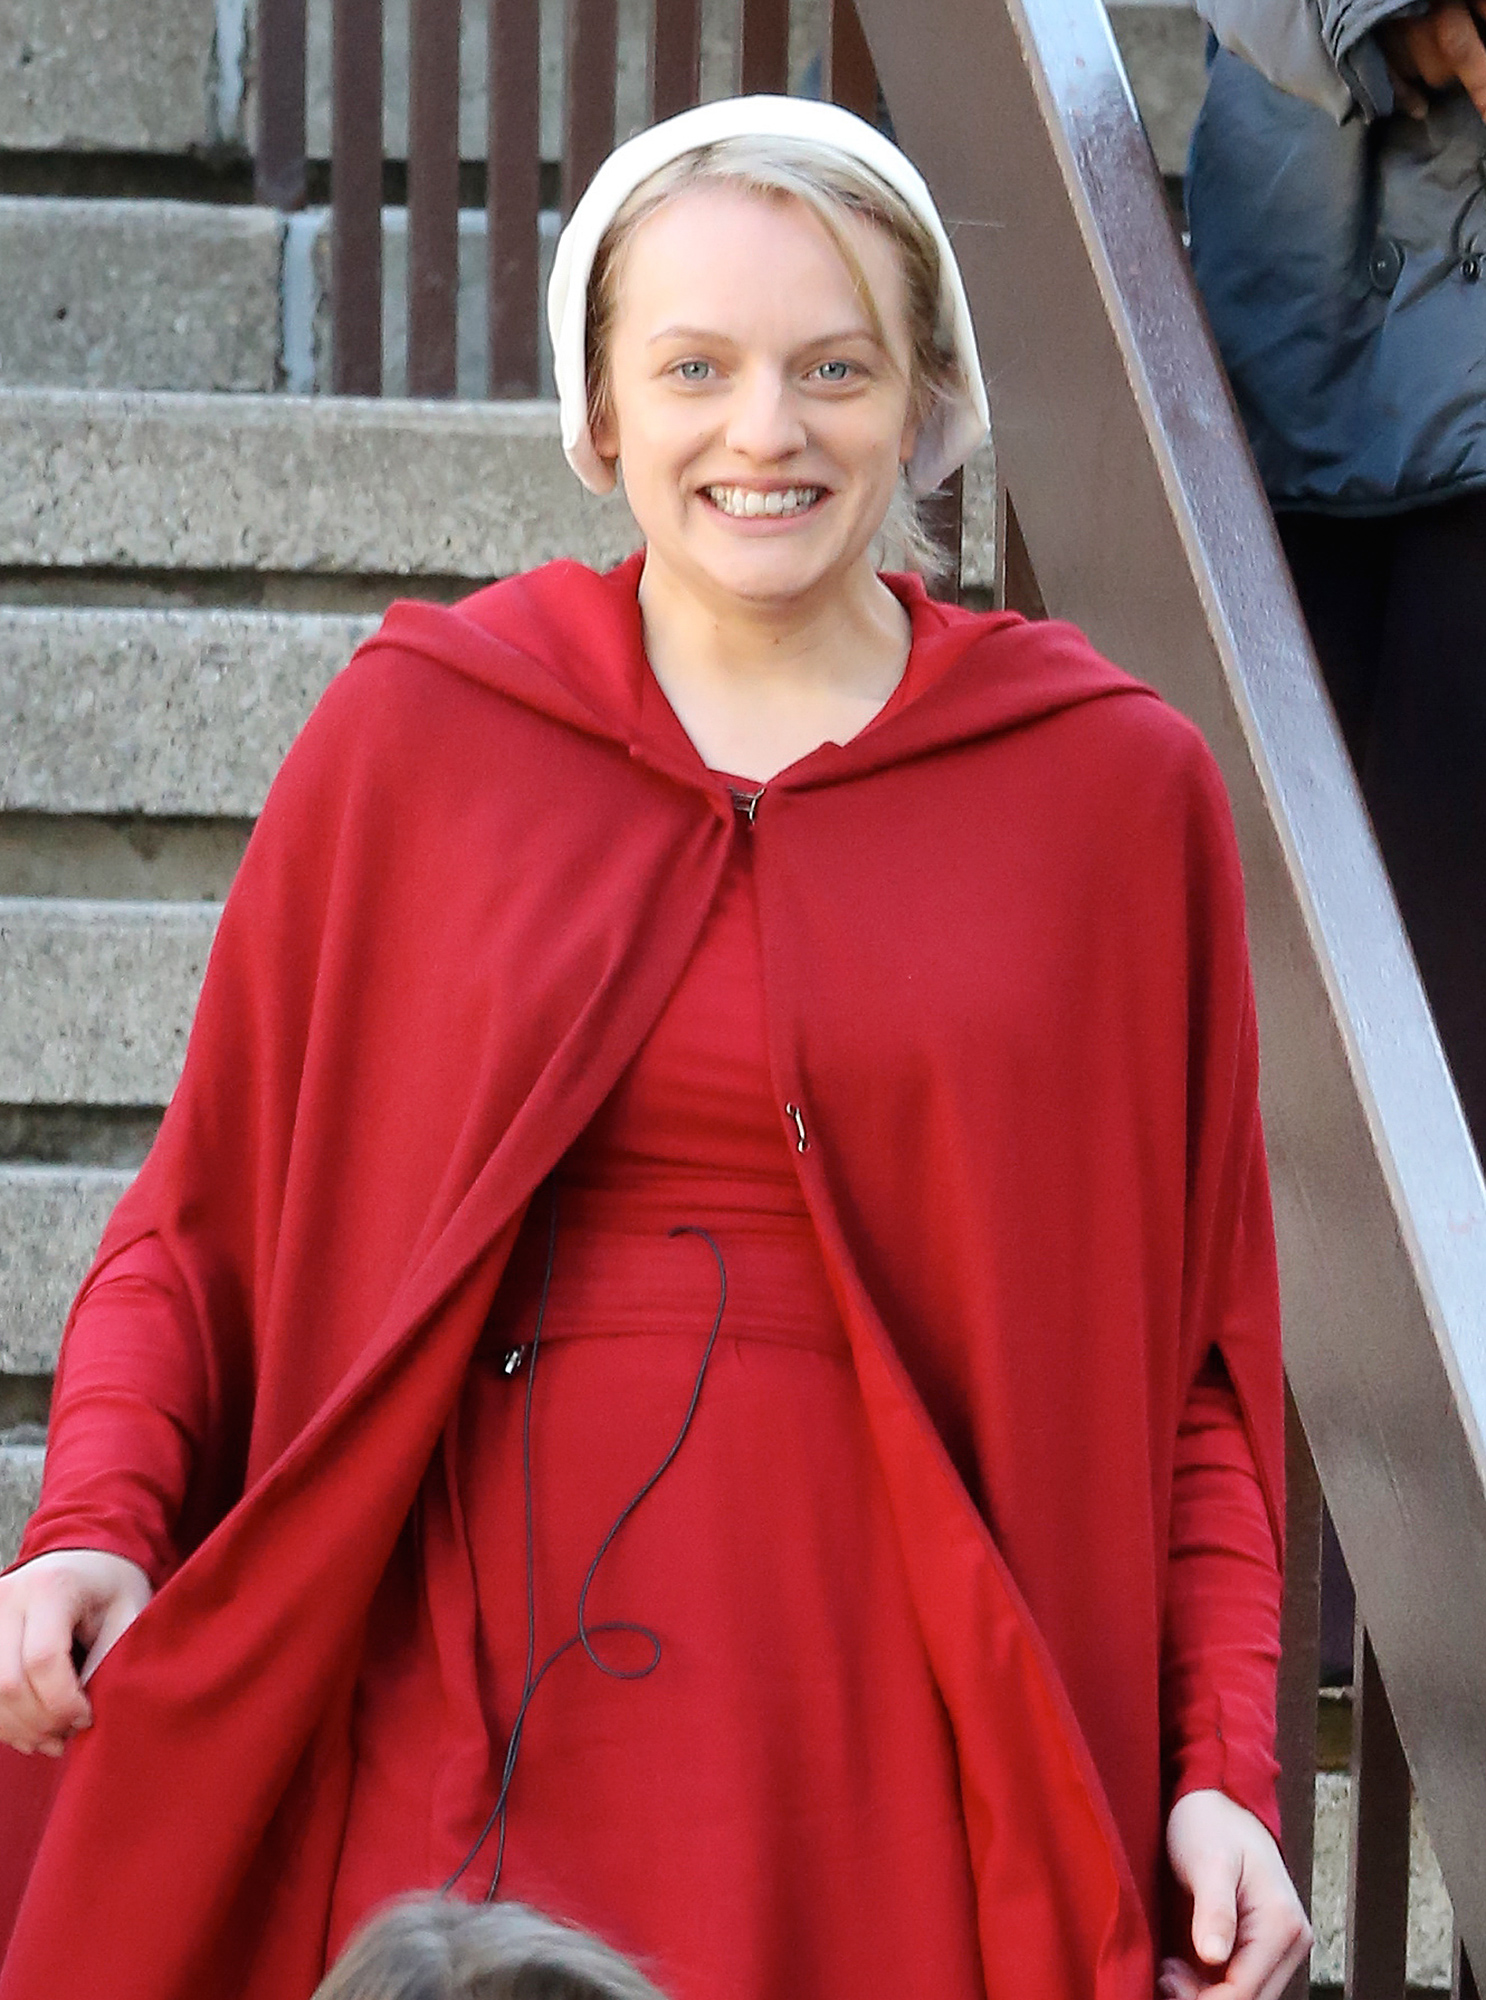 EXCLUSIVE: Elisabeth Moss in Costume as 'Offred' in The Handmaid's Tale, Filming in Toronto.